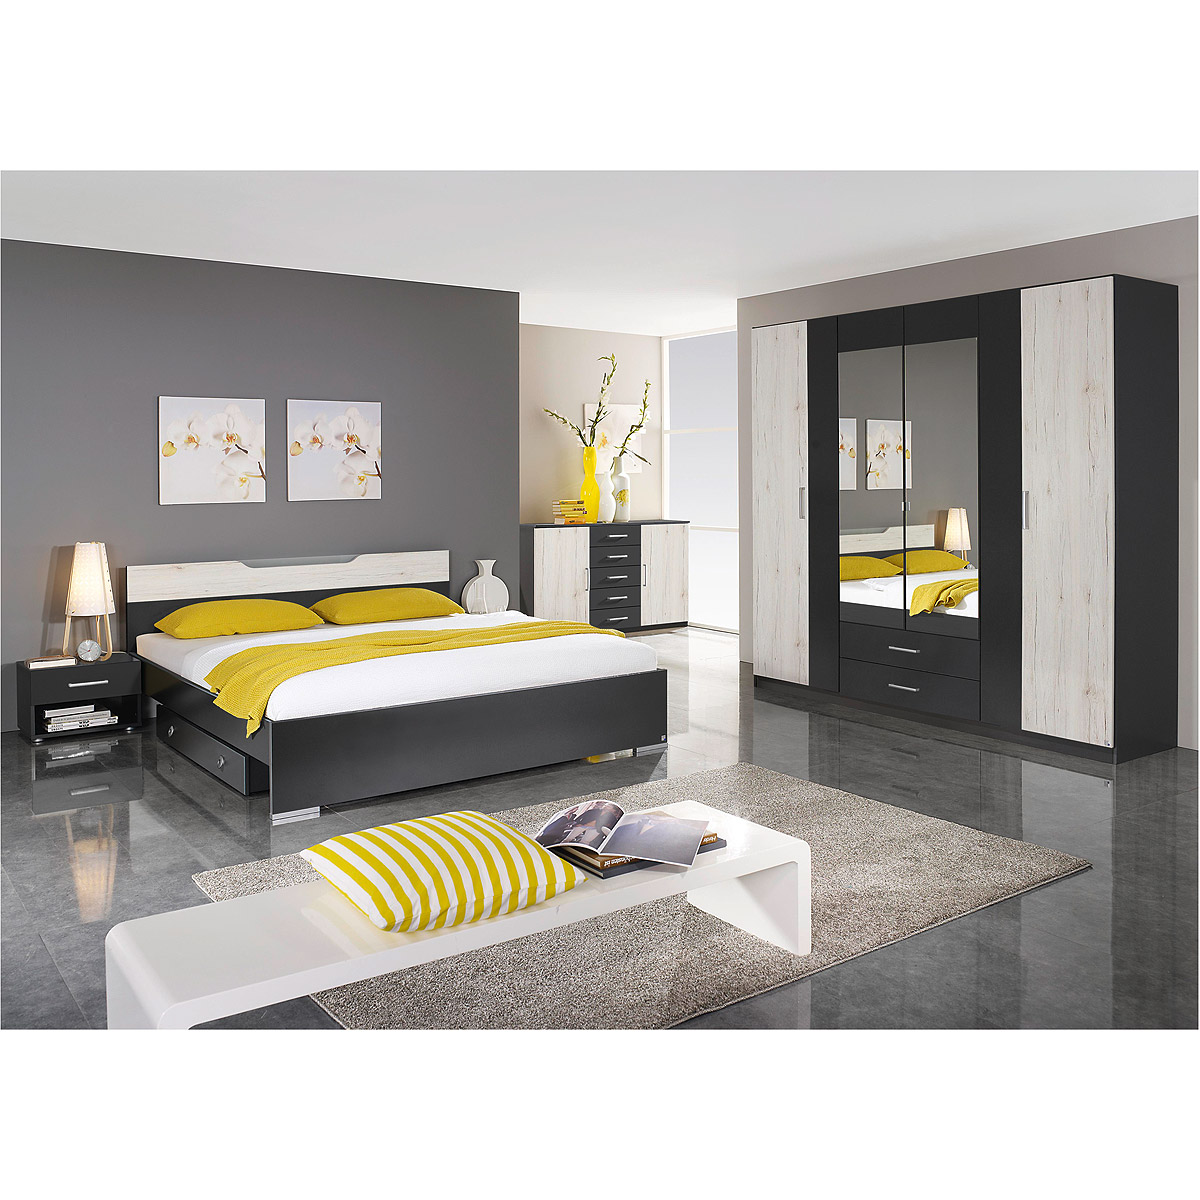 schlafzimmer set cartagena bett nako schrank grau metallic eiche sanremo wei ebay. Black Bedroom Furniture Sets. Home Design Ideas